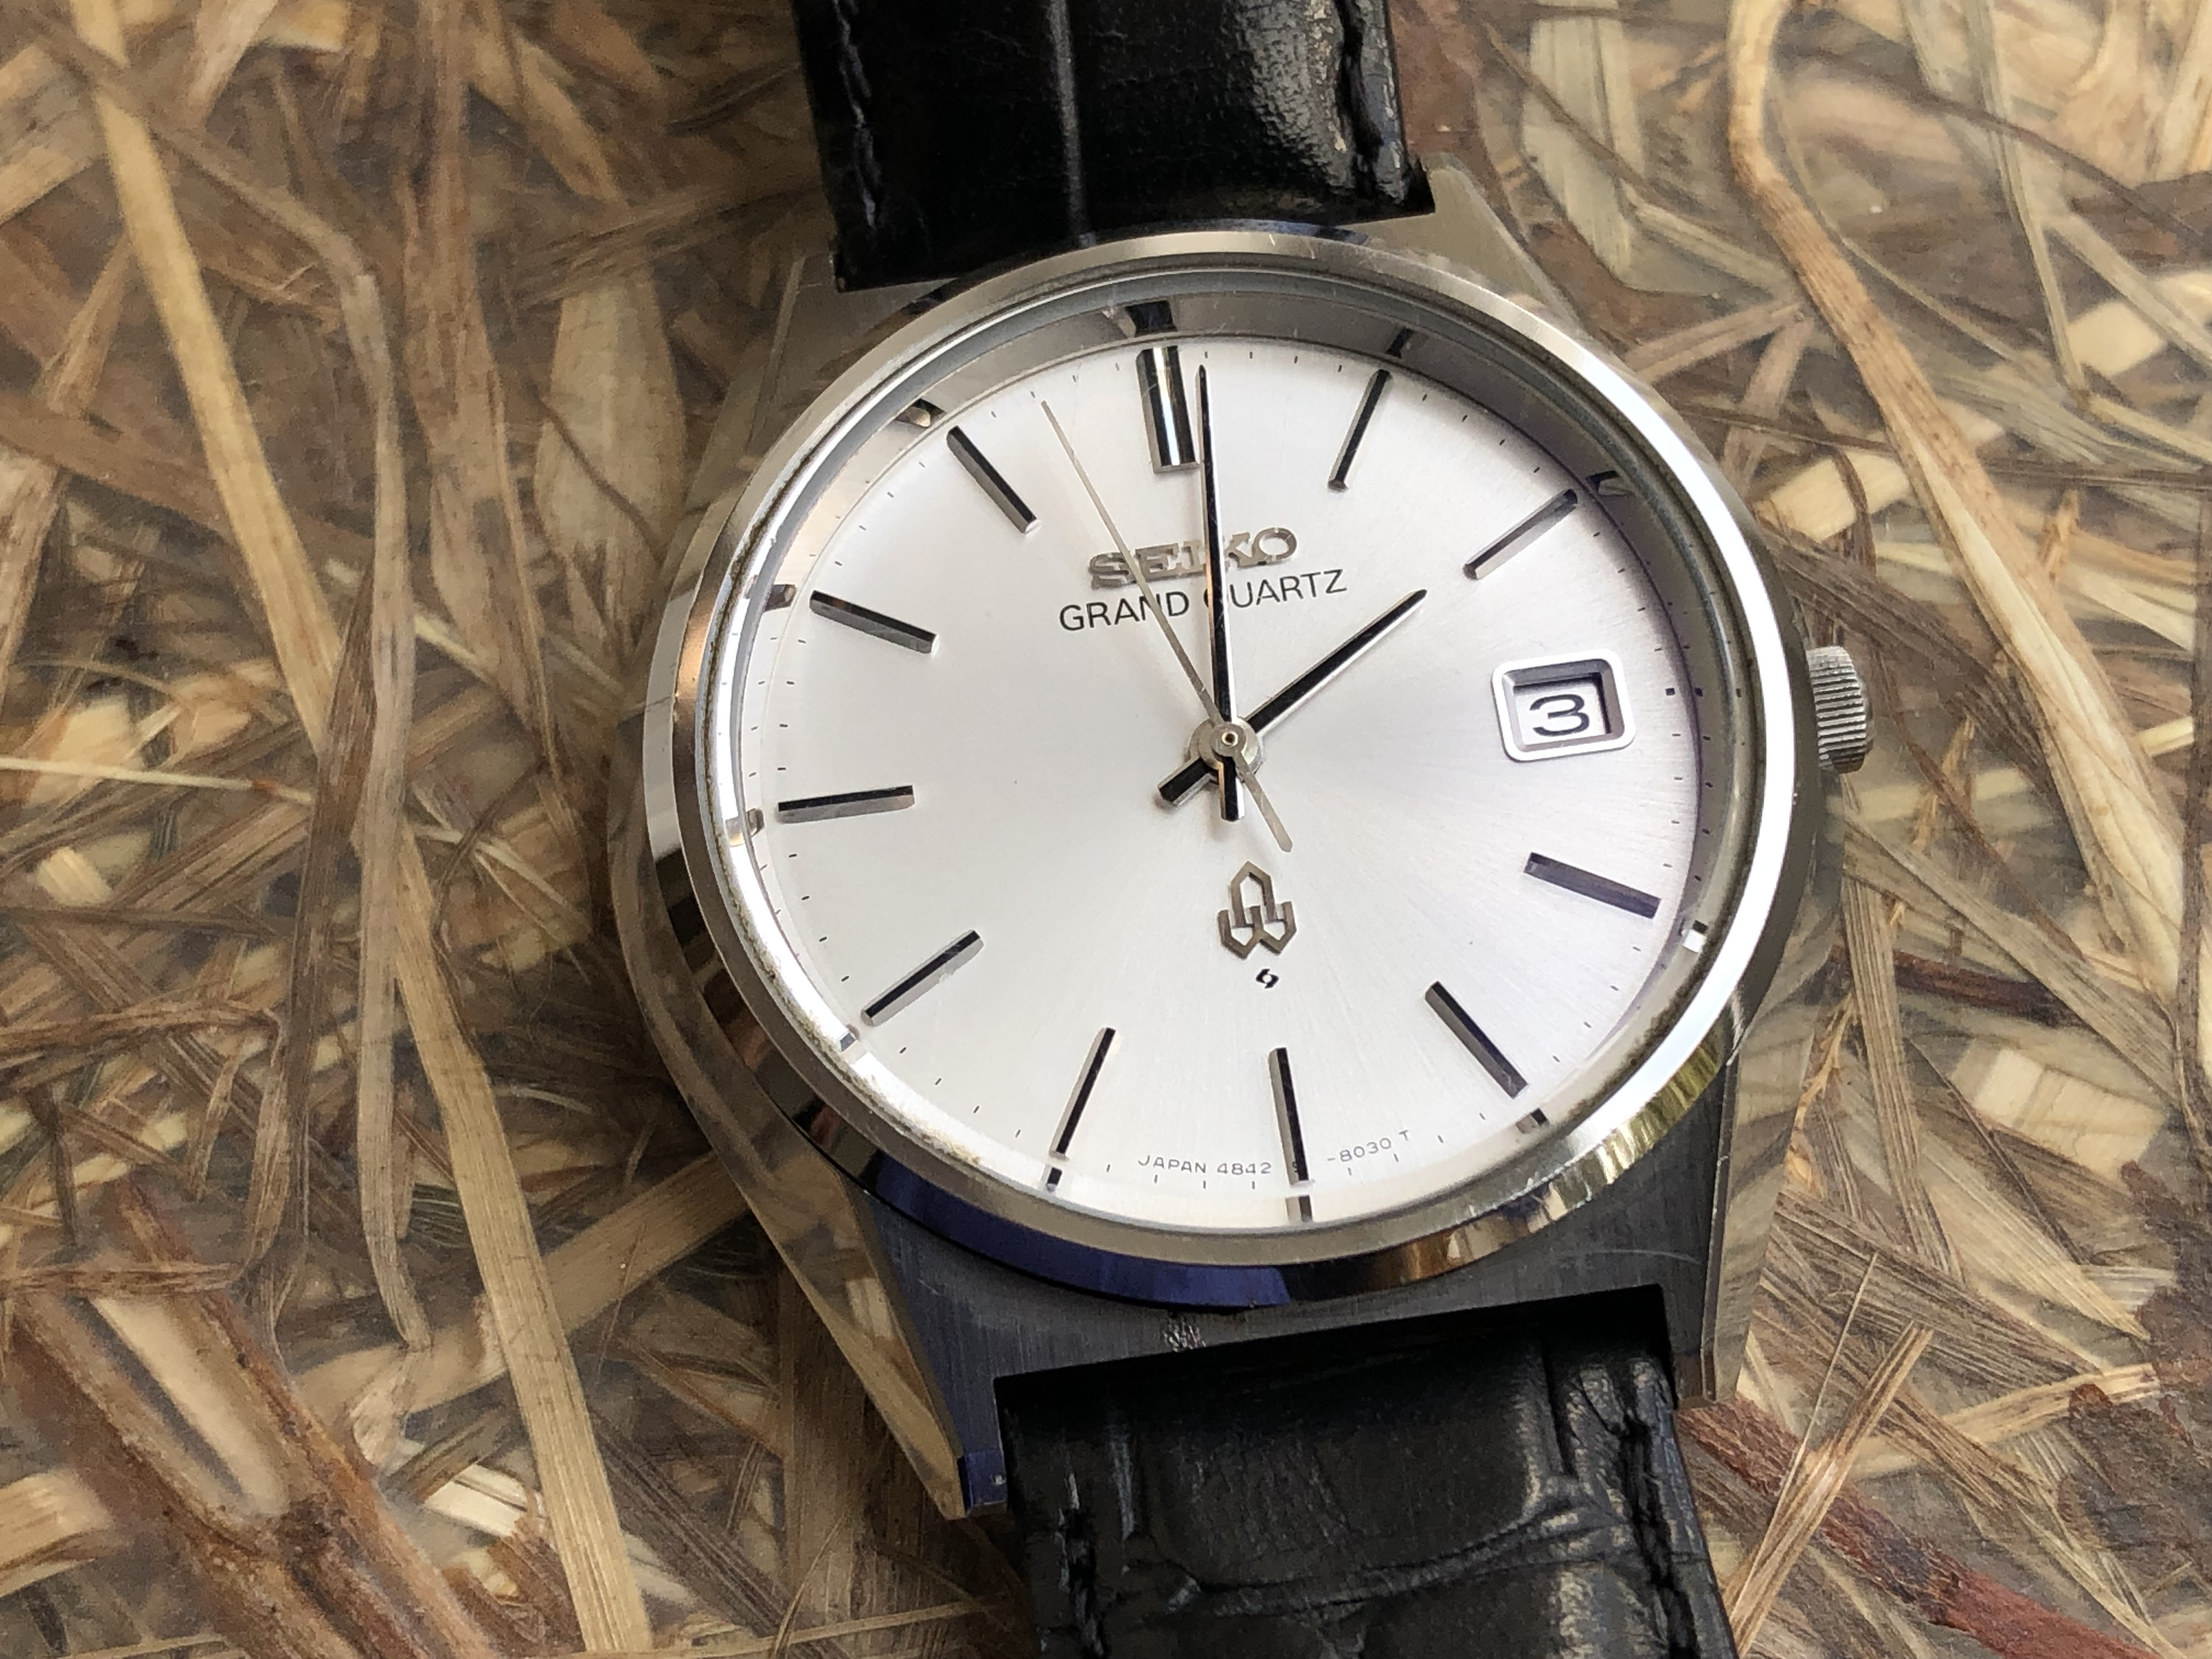 Seiko Grand Quartz 4842-8041 (Sold)